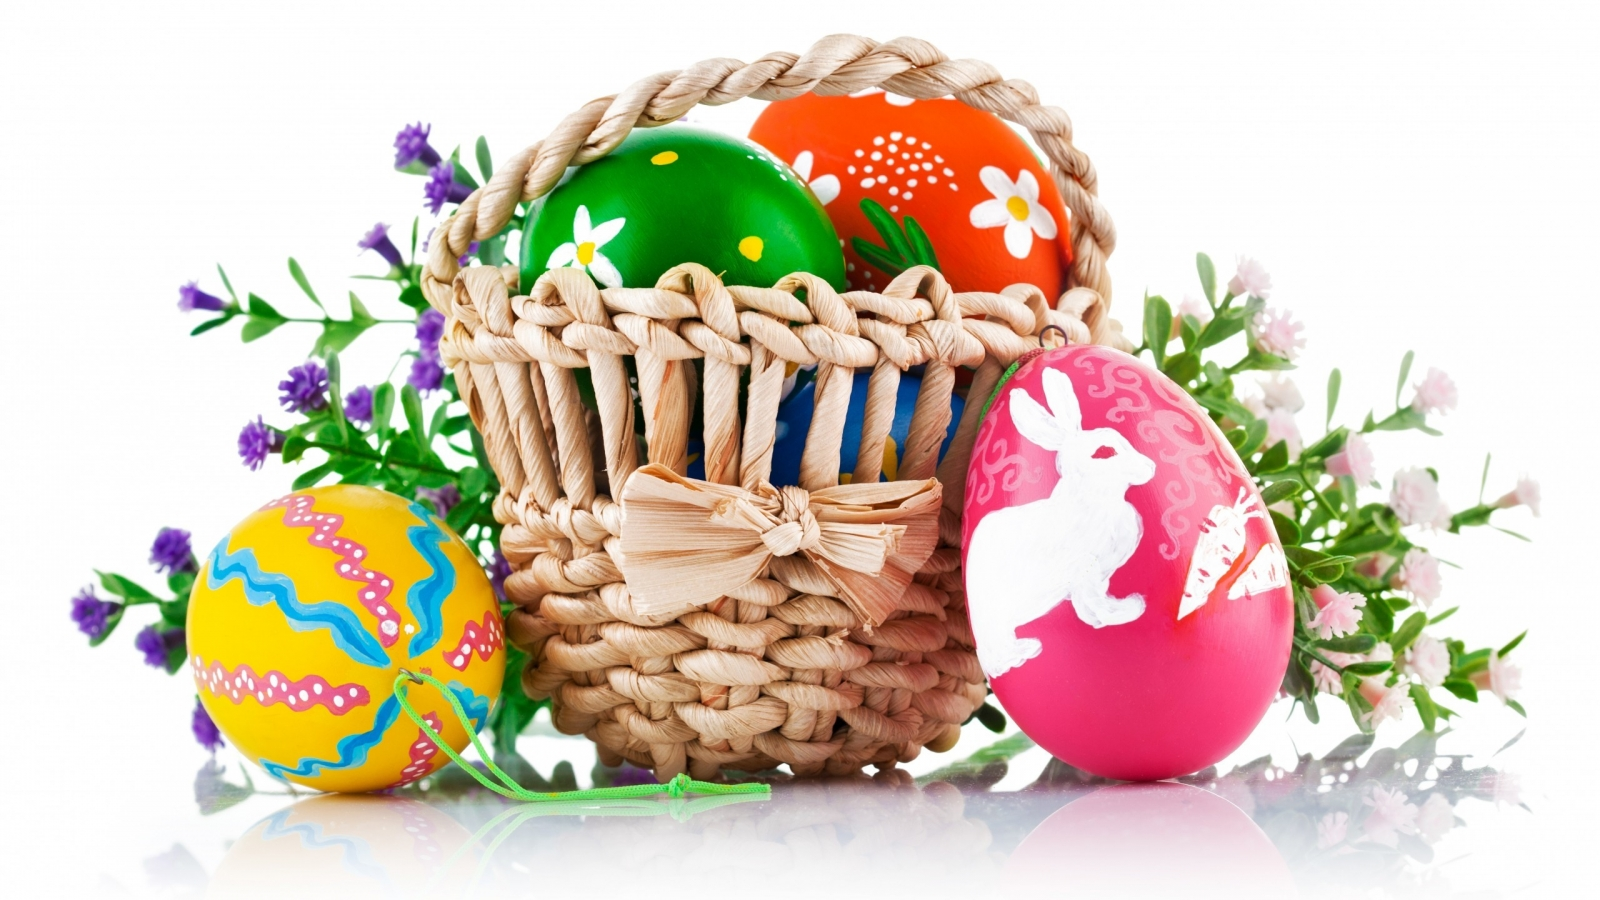 Easter Basket for 1600 x 900 HDTV resolution